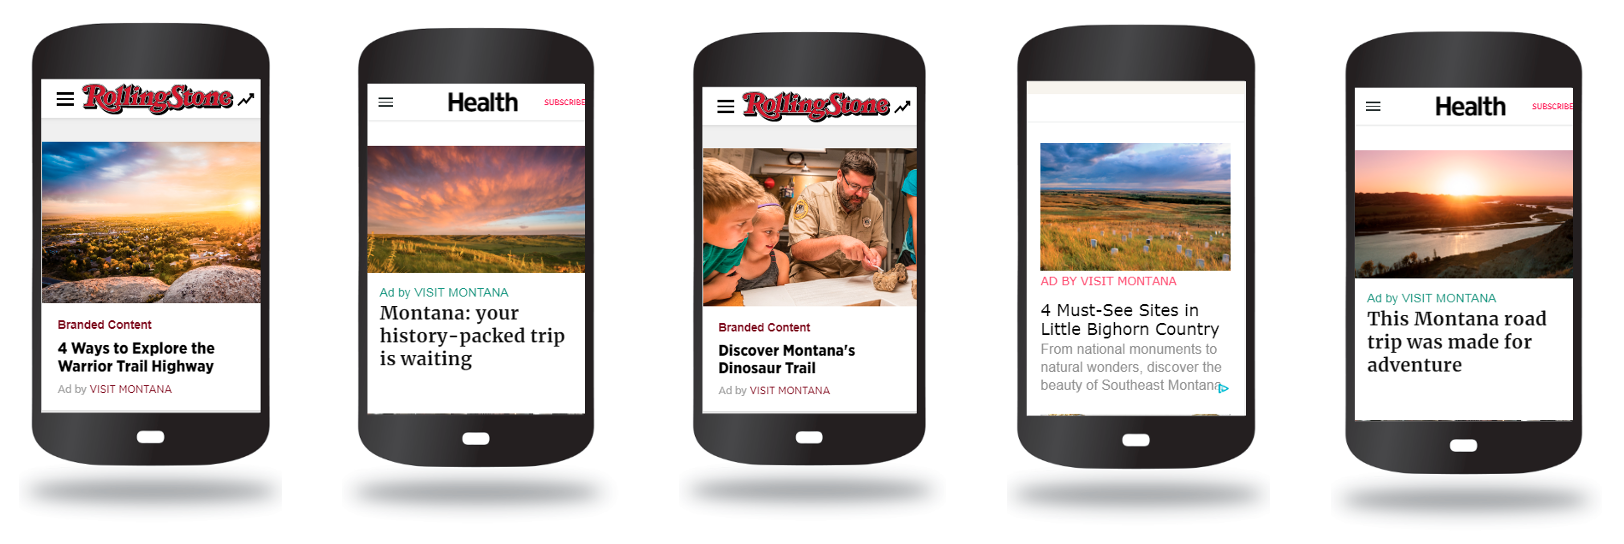 Five examples of Montana native display ads on mobile phones.